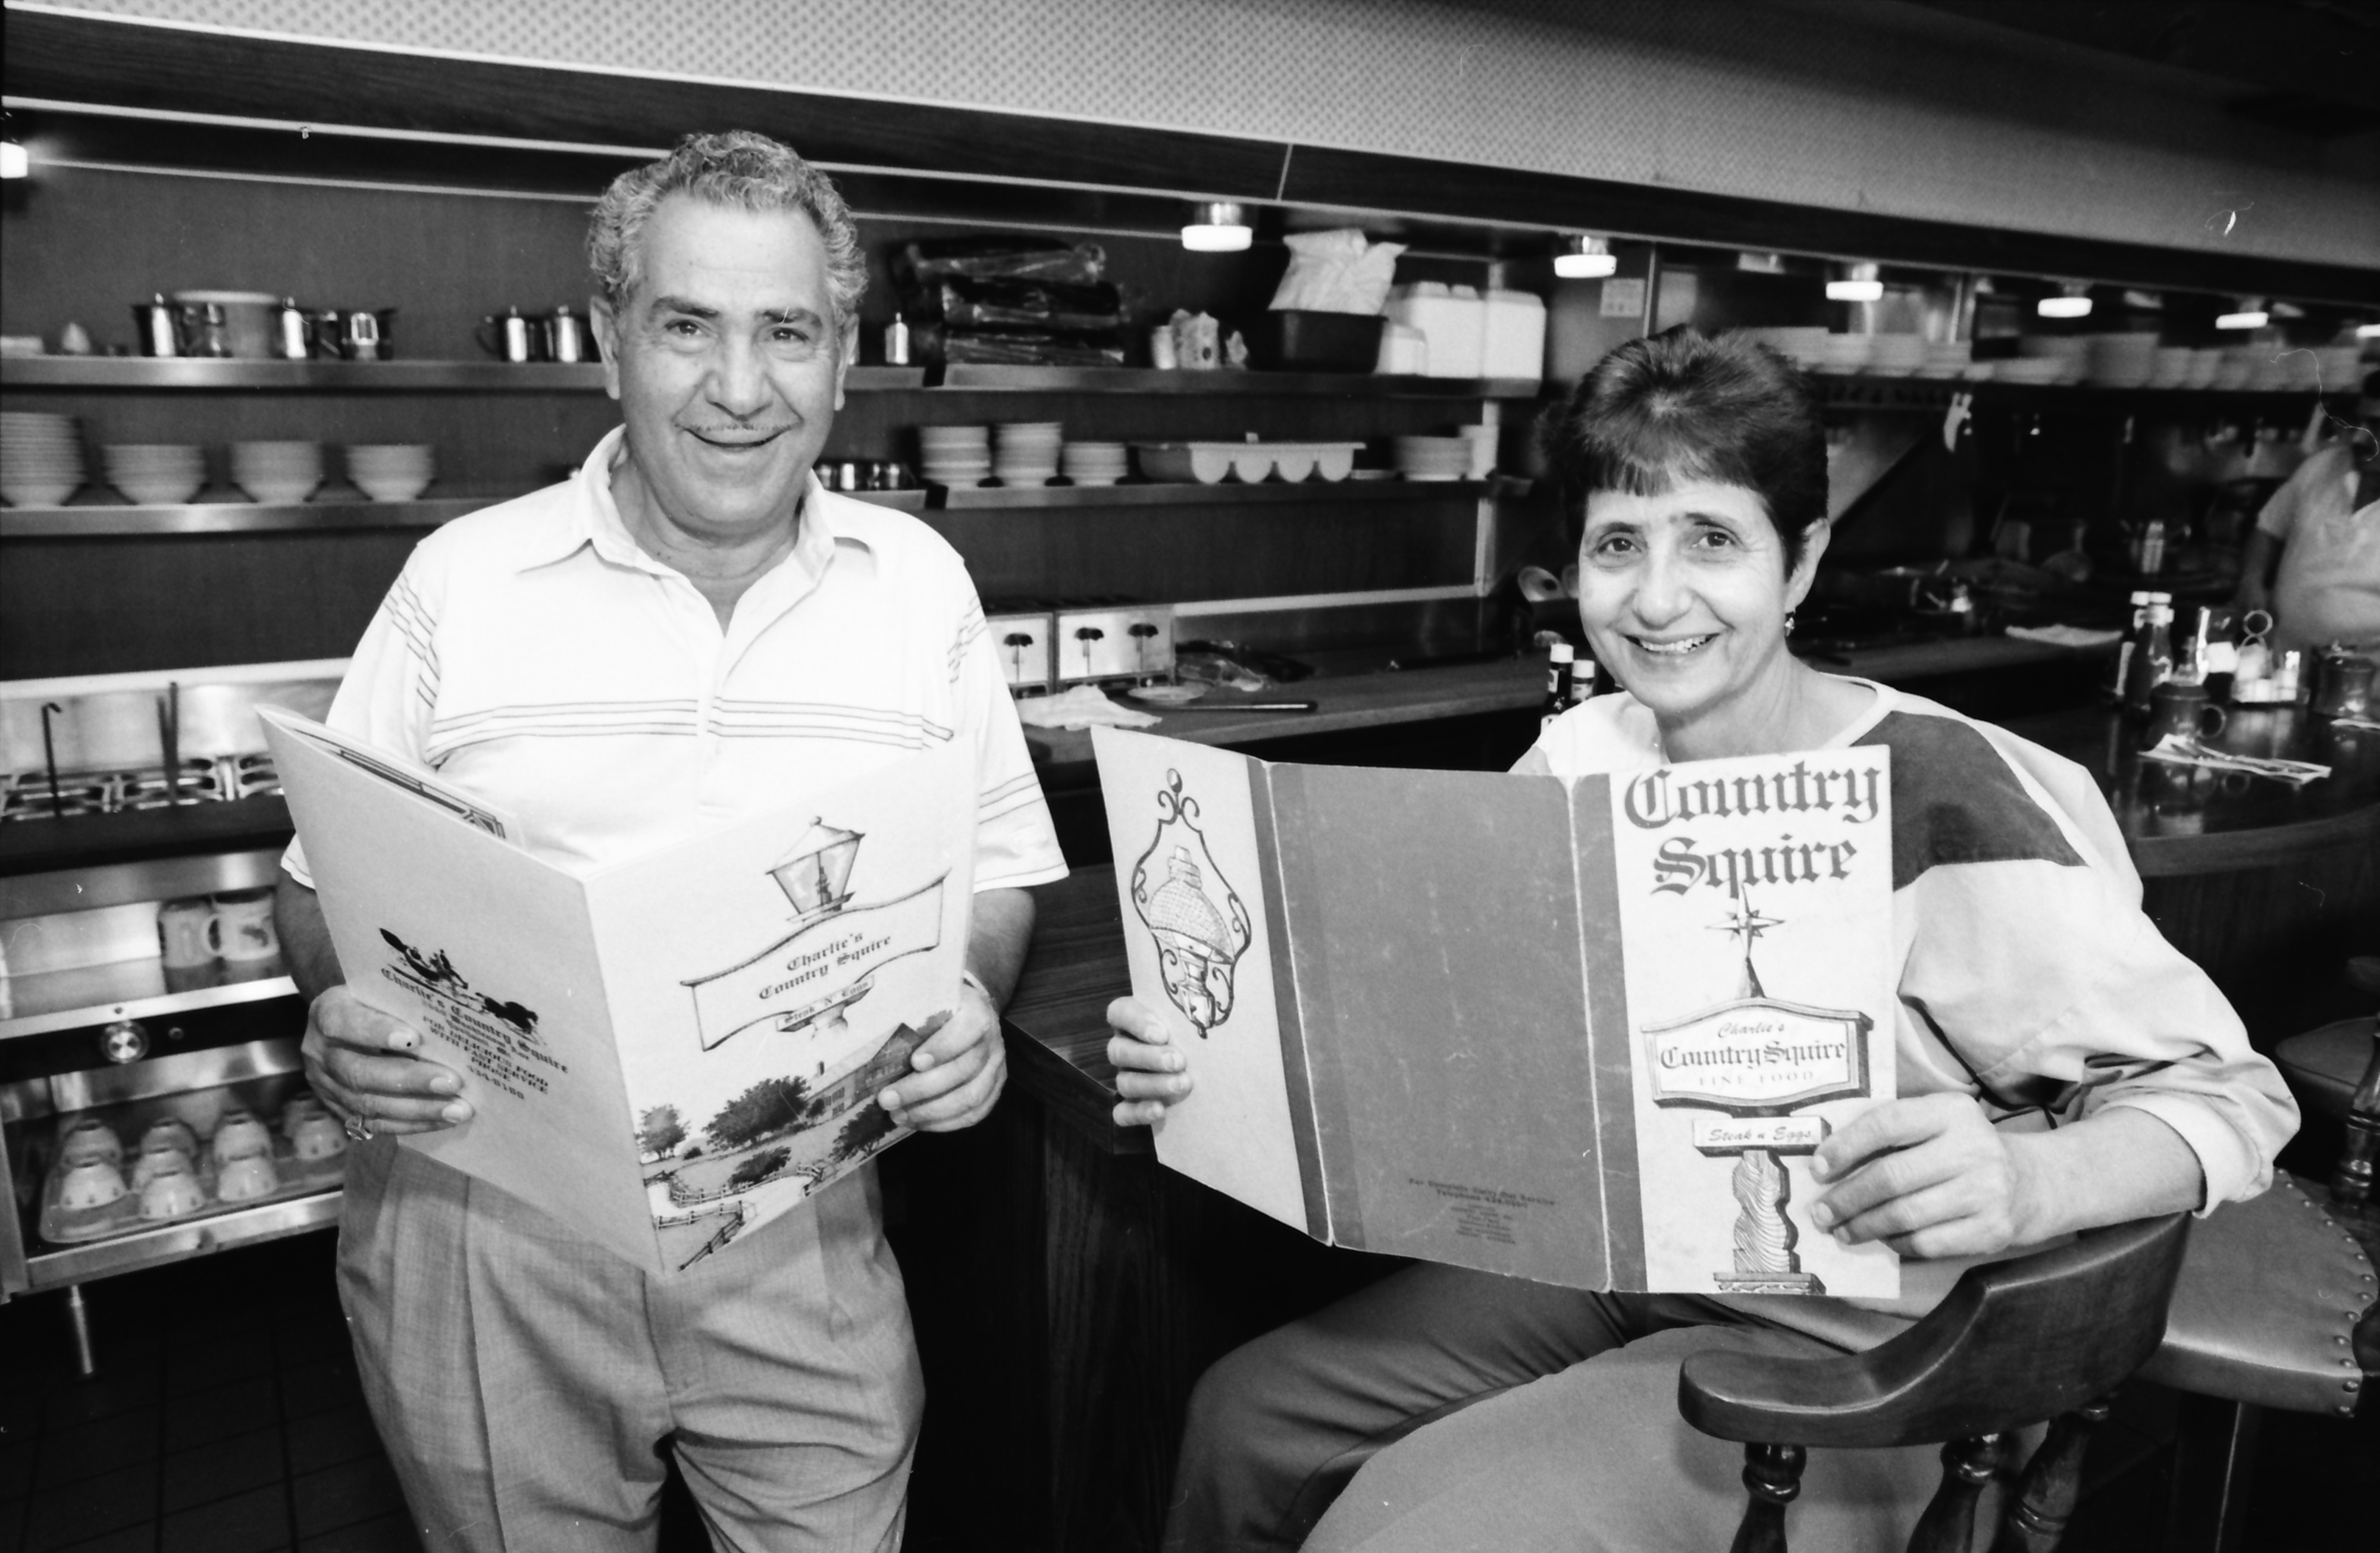 Charlie and Pat Philippou at Country Squire, June 1992 image